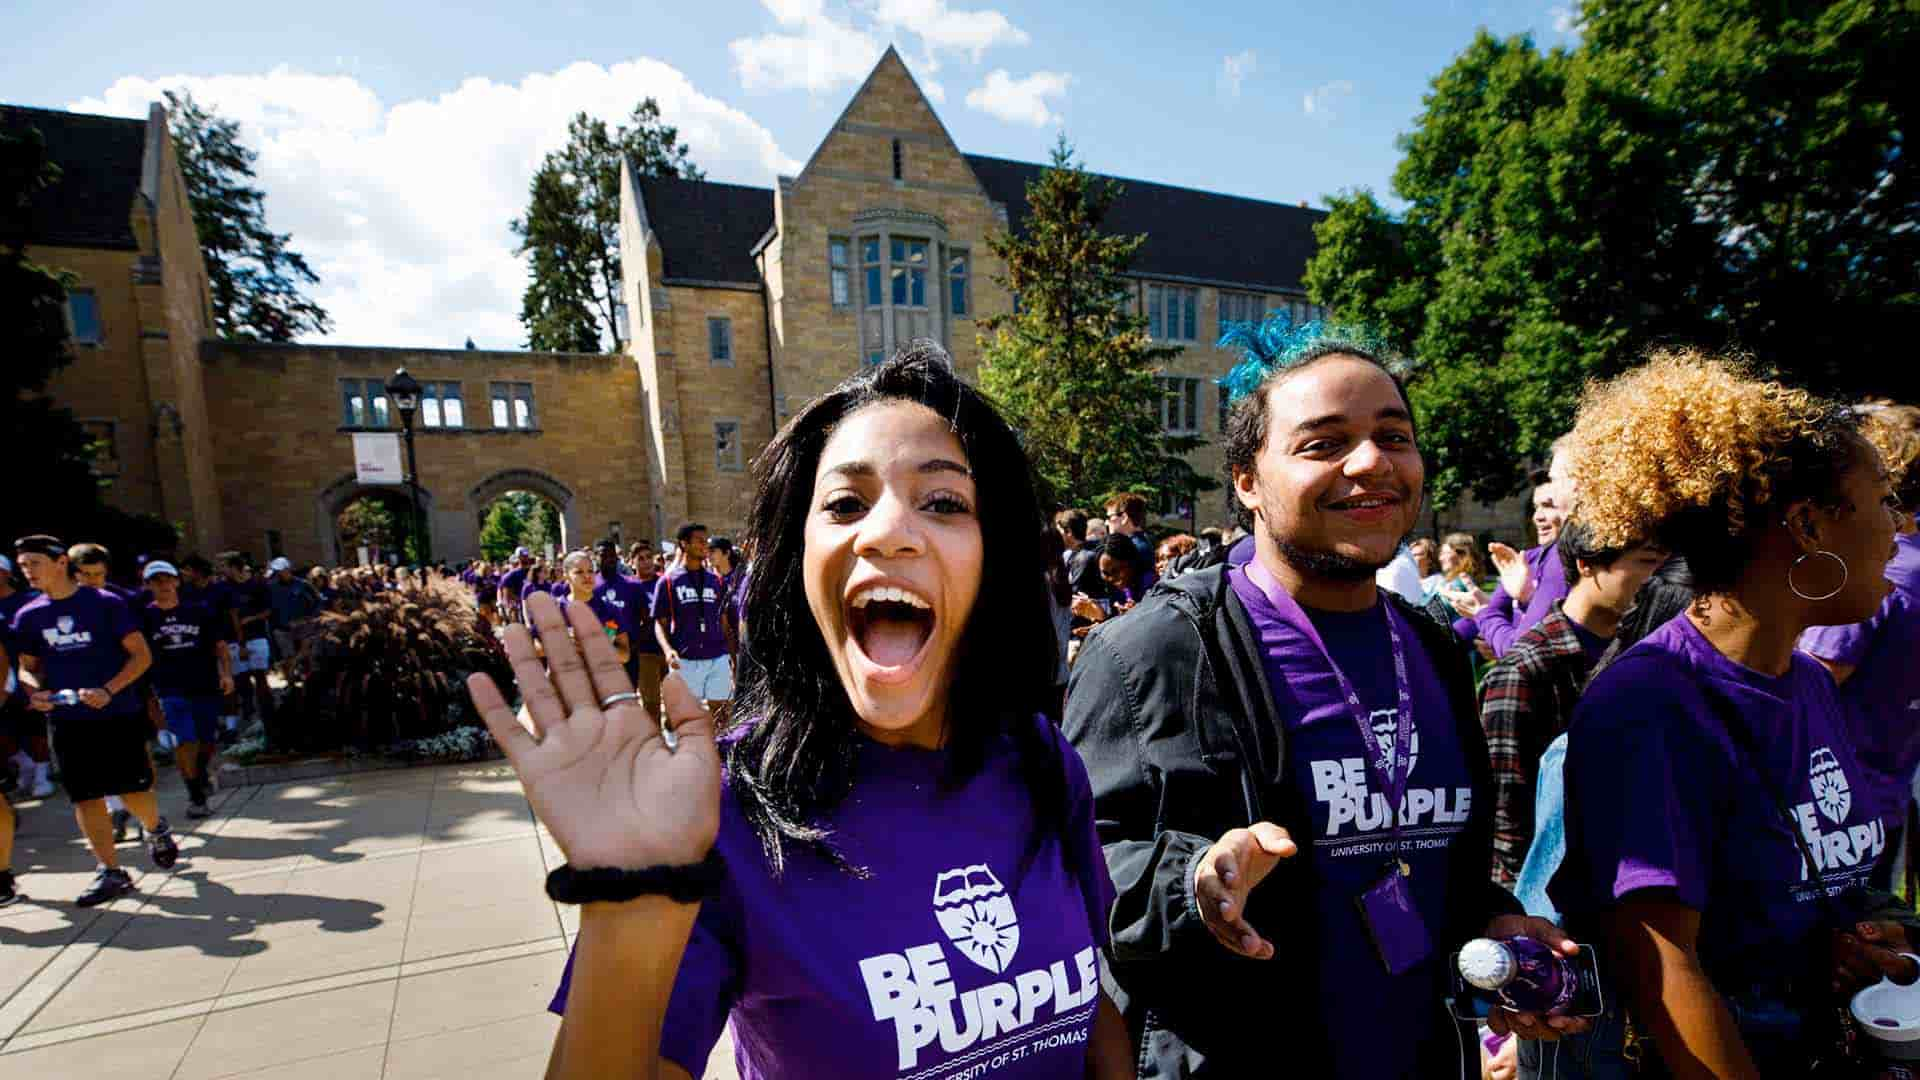 Freshman students march through the arches on the St. Paul, University of St. Thomas campus.